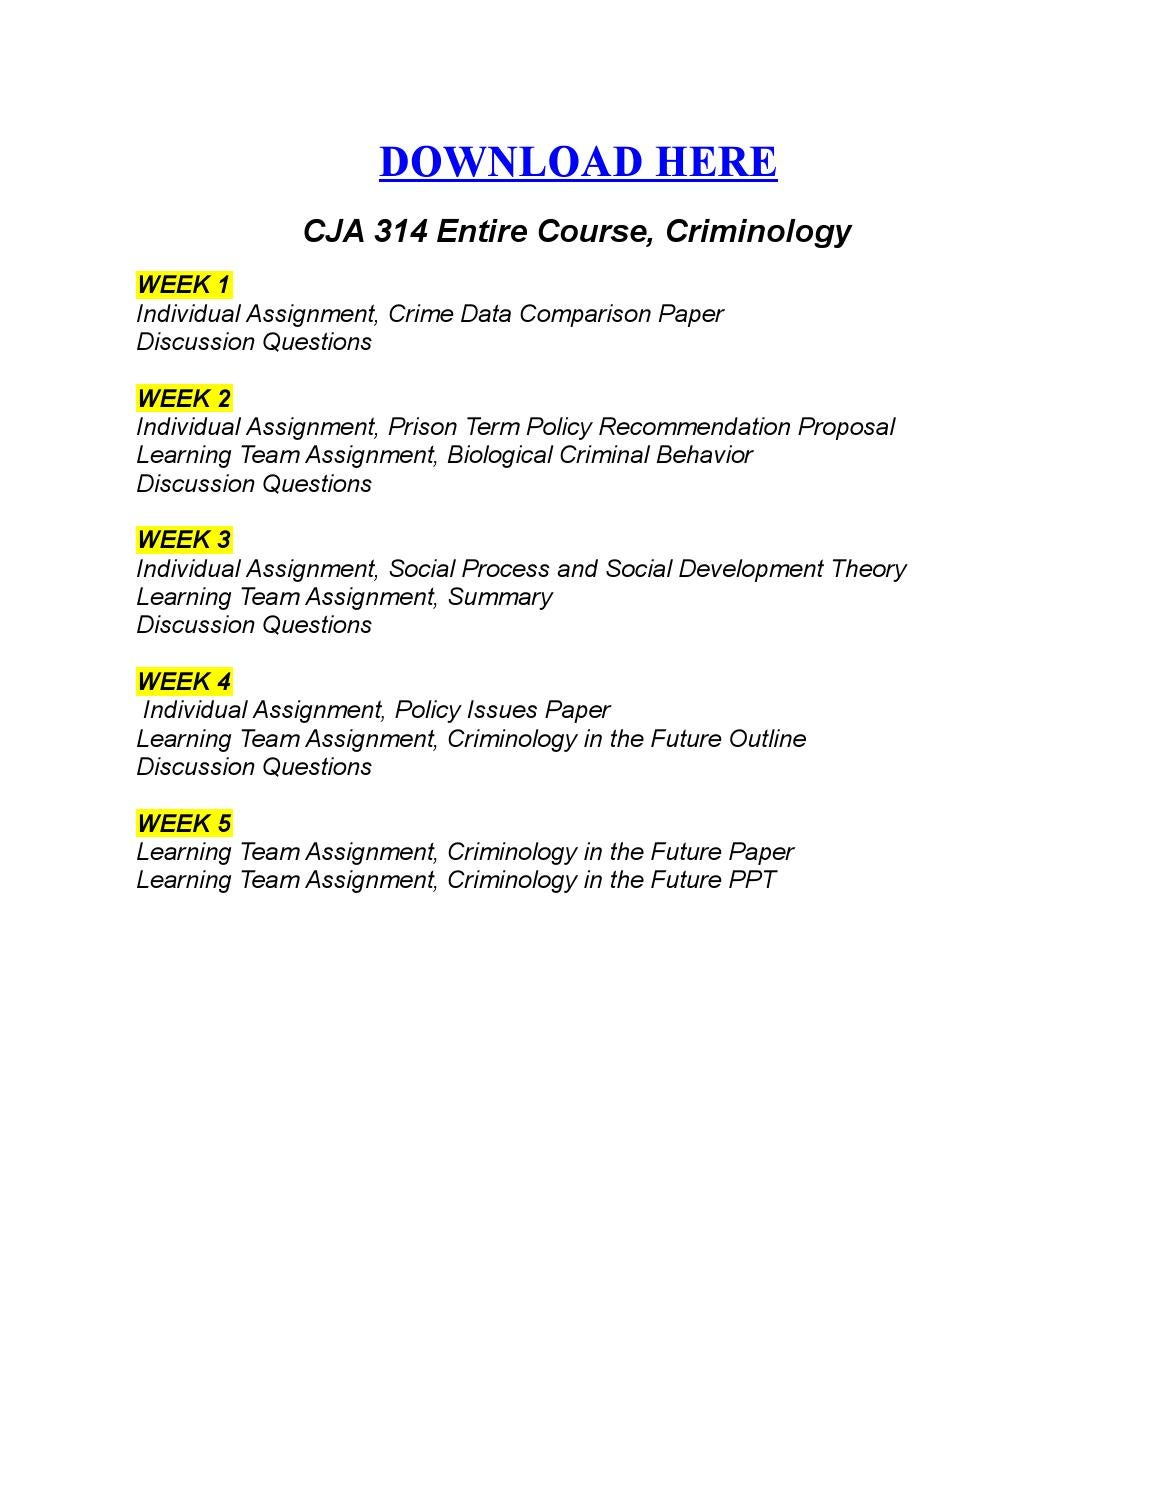 cja 314 crime data uop cja 314 week 1 individual crime data comparison paper to purchase this material link h.